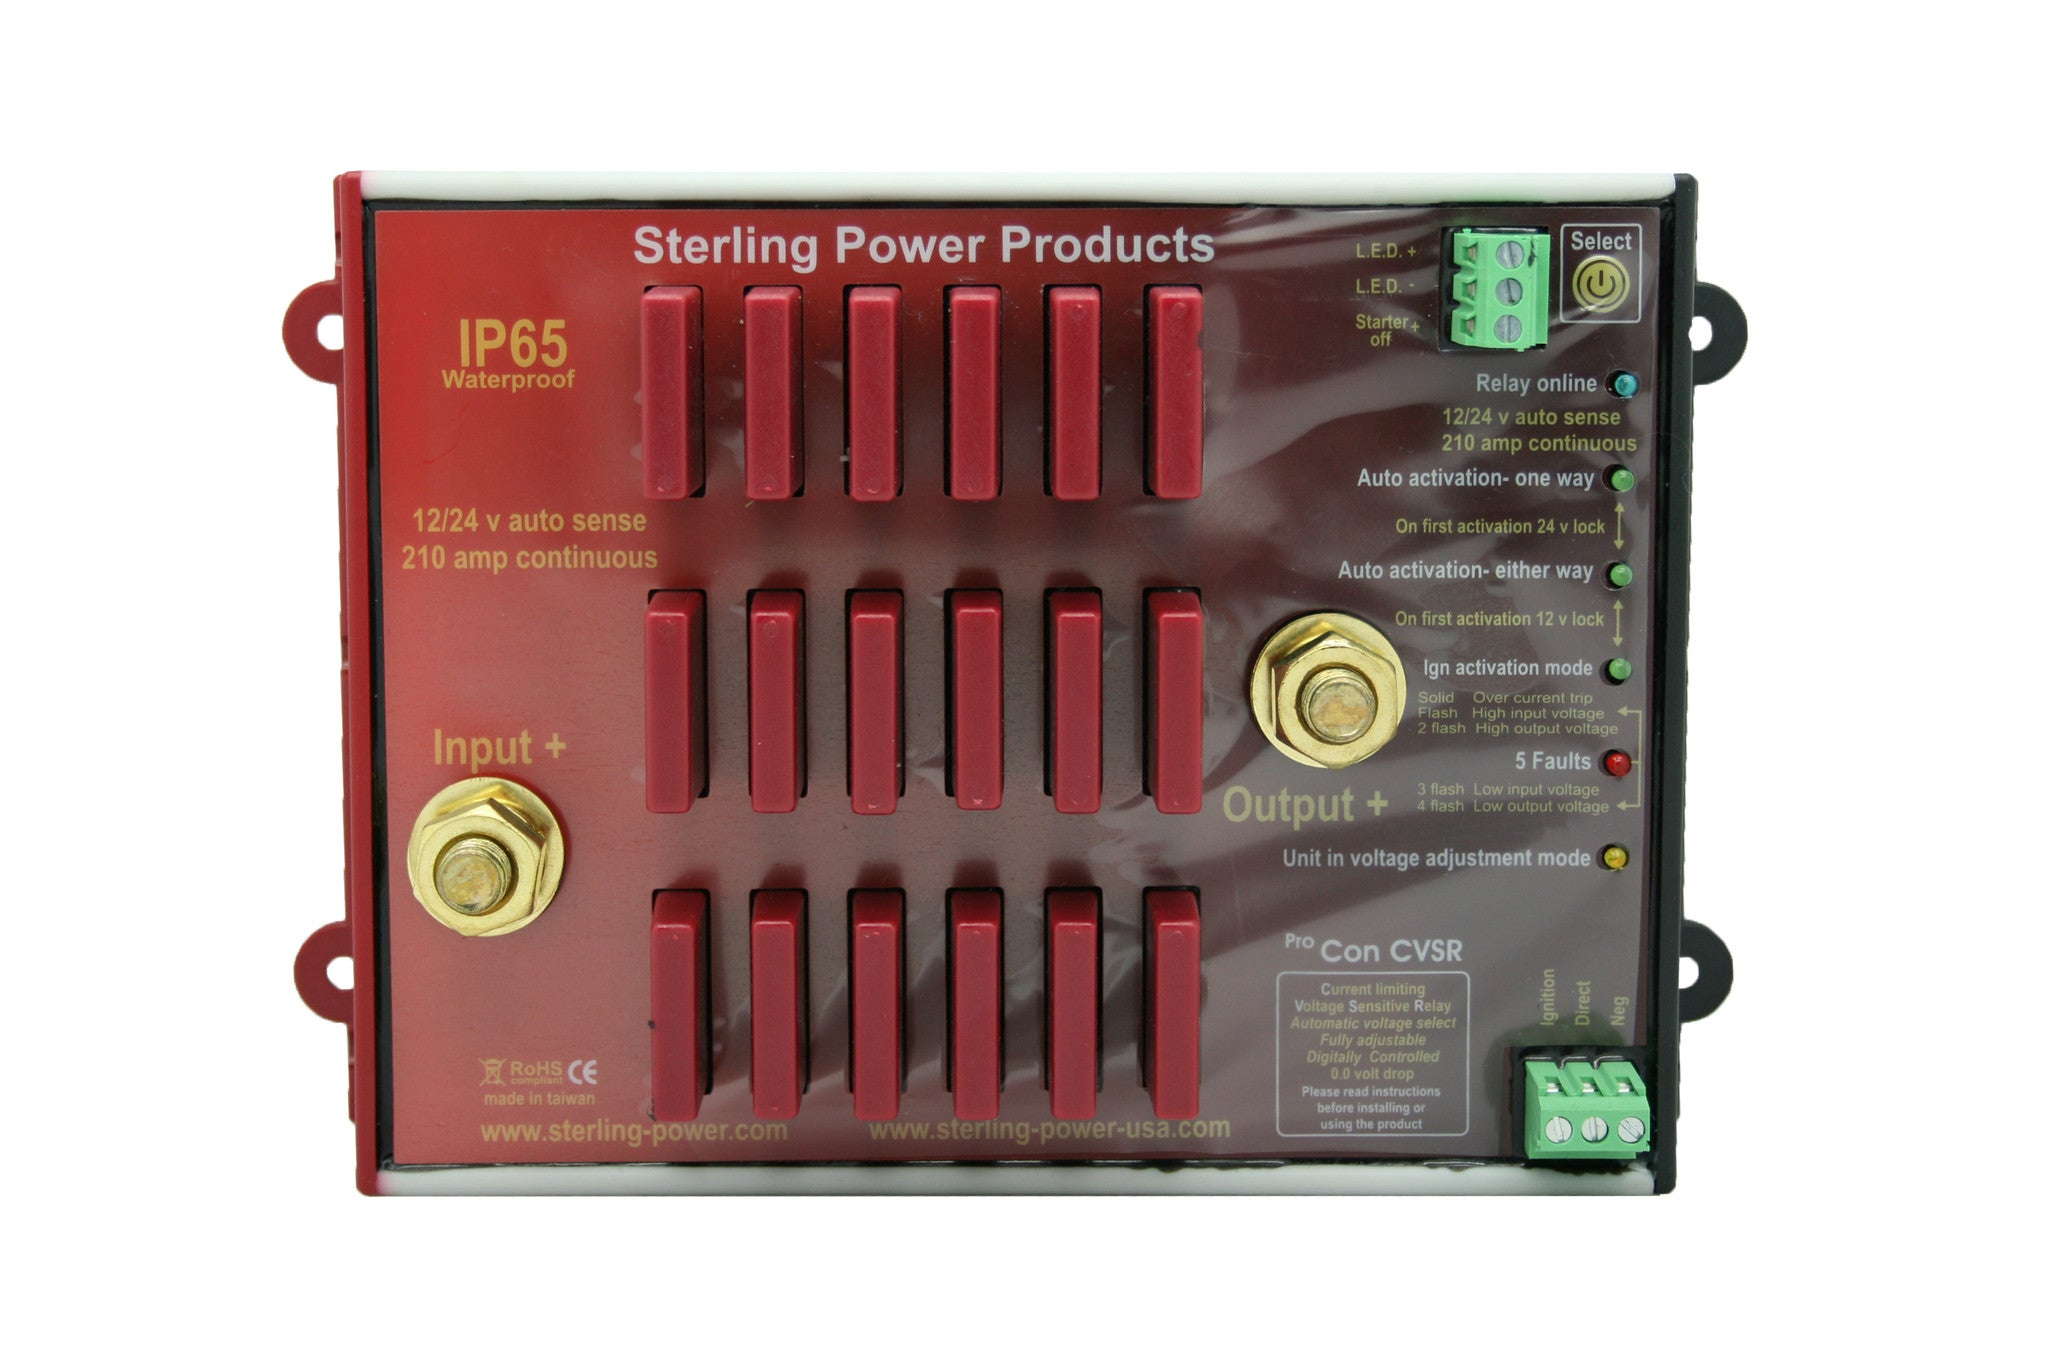 Current Limiting VSR Pro Con CVSR Sterling Power Products